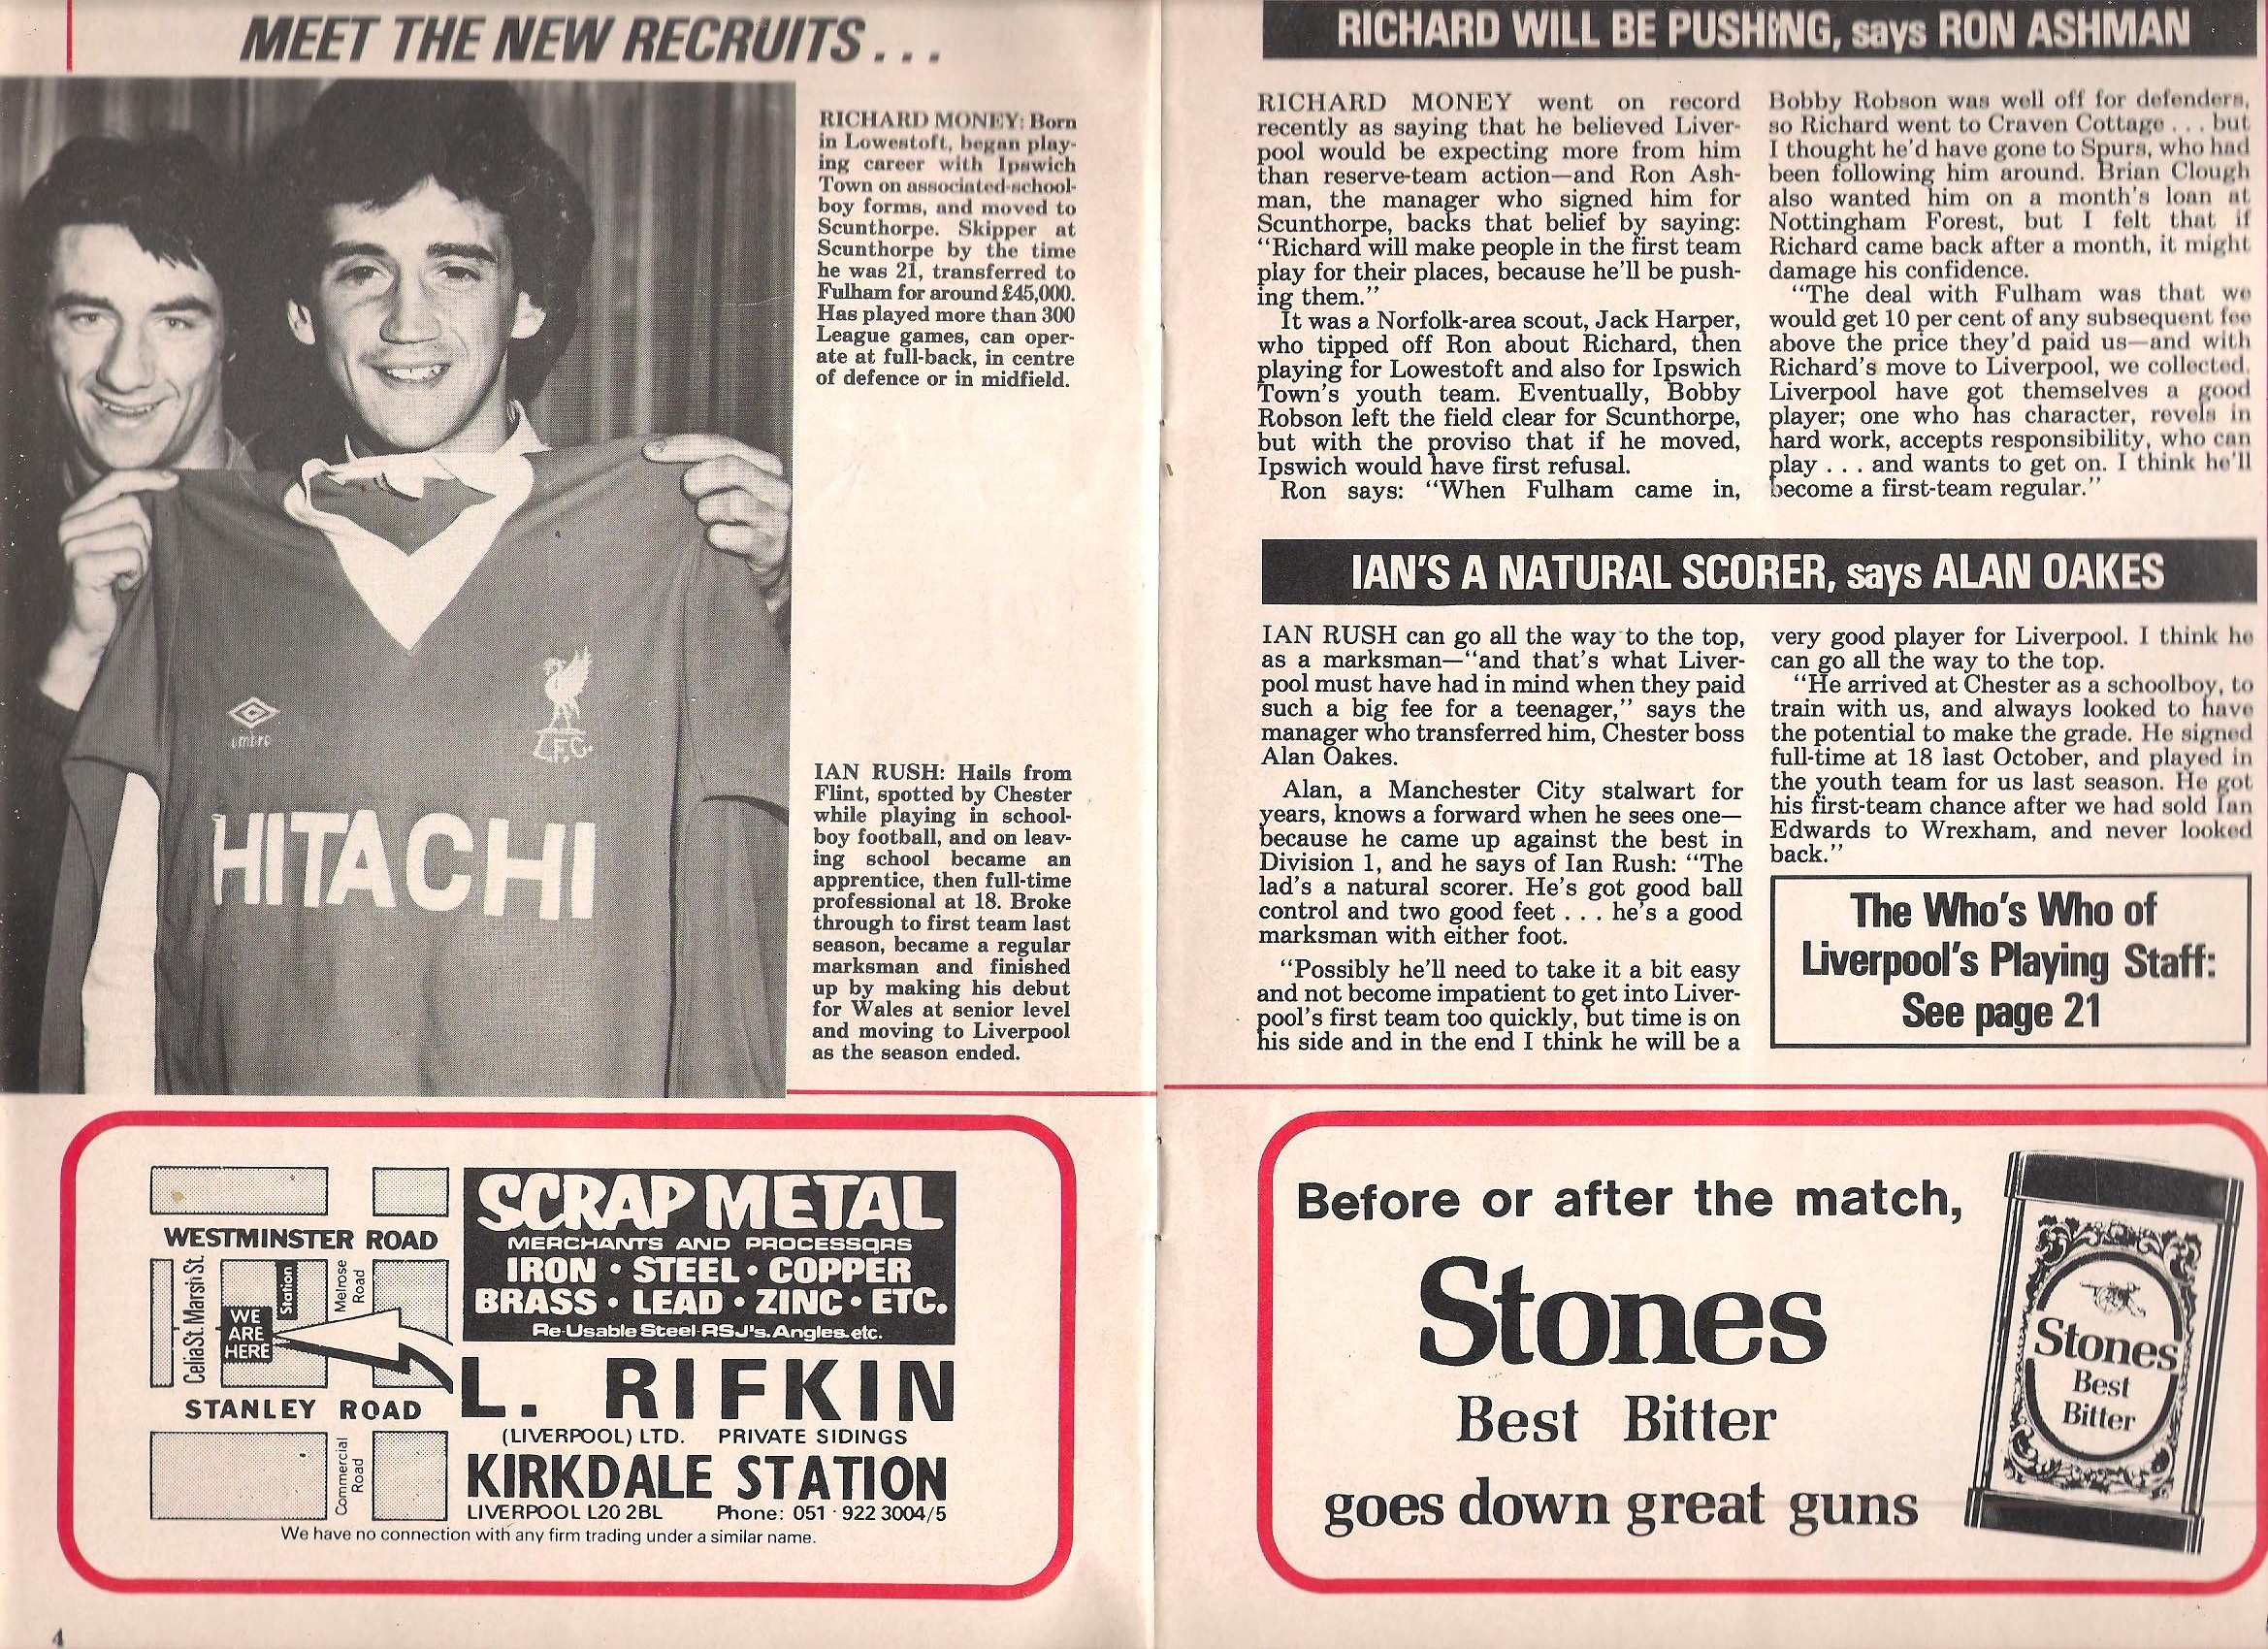 Meet the new recruits - Anfield Review in 1980